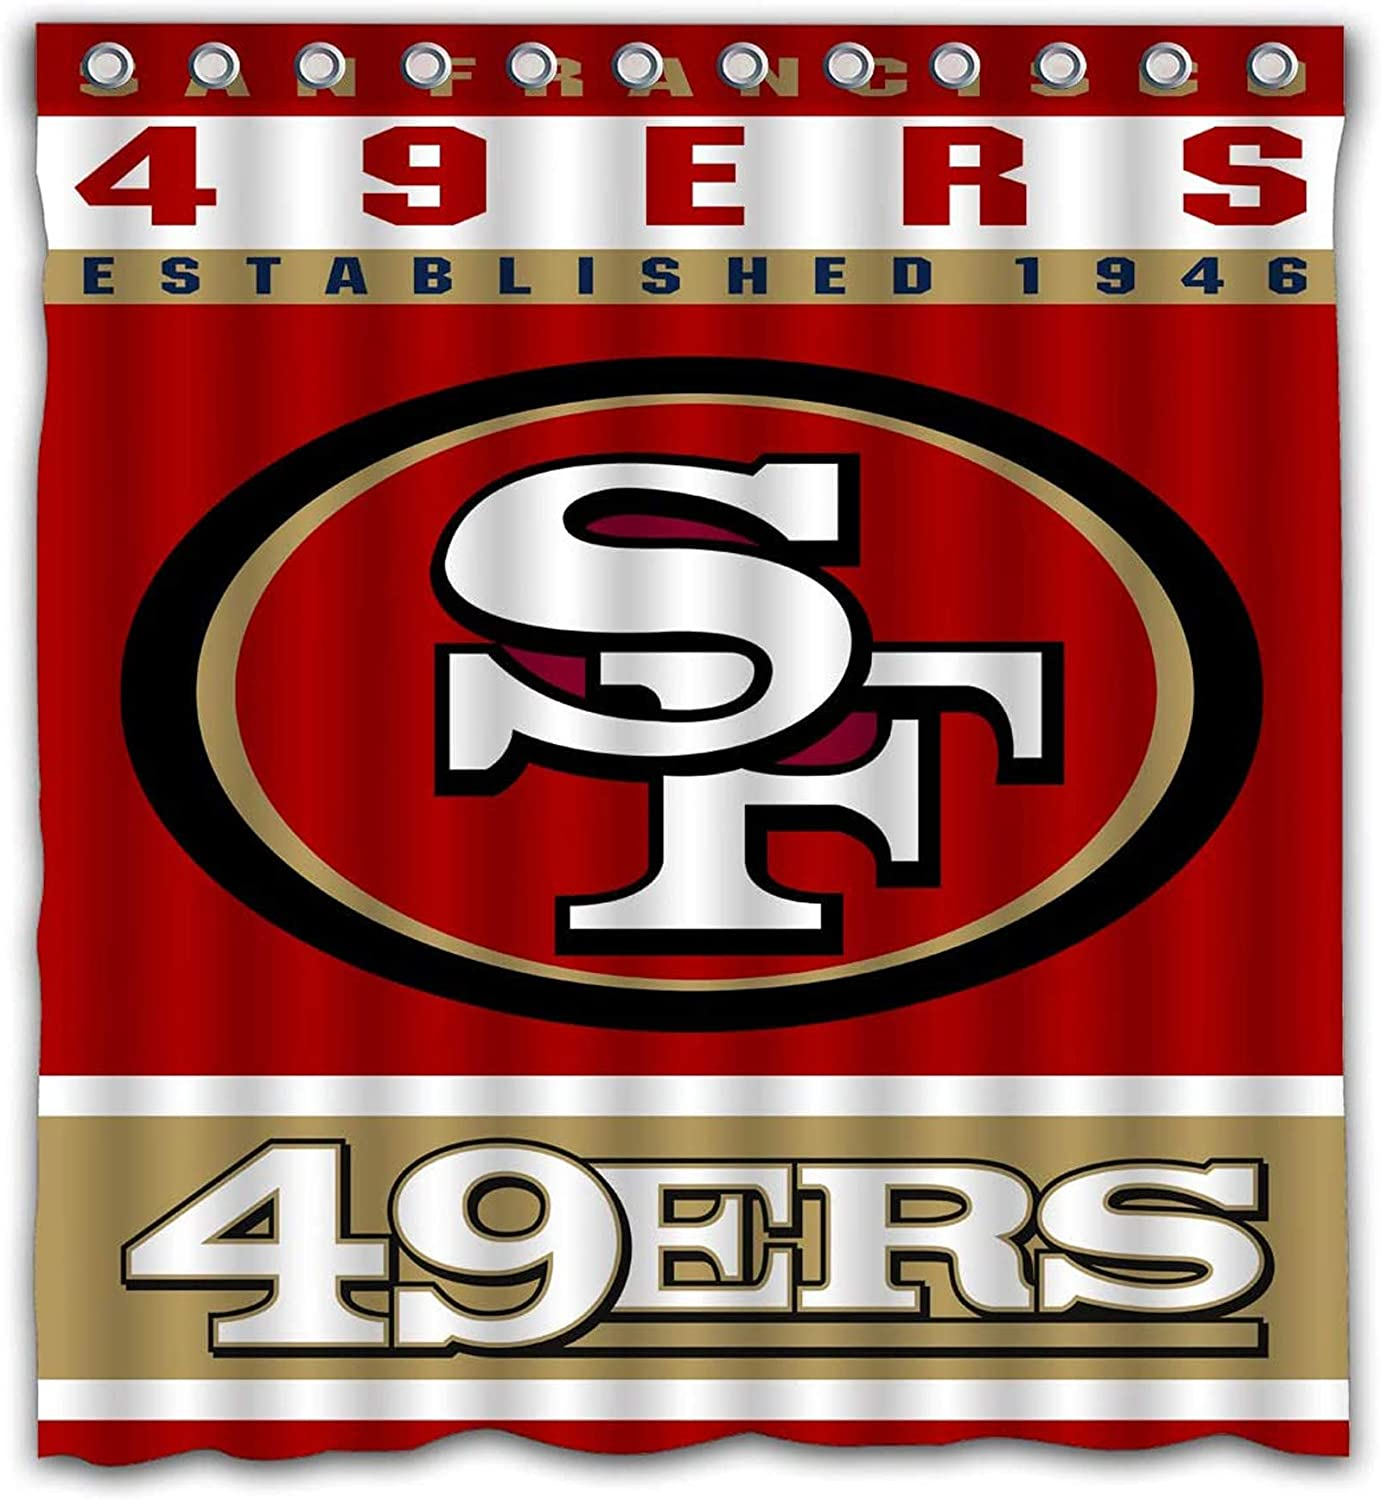 Team Design Shower Curtain Waterproof Polyester Fabric 66x72 Inches 49ers